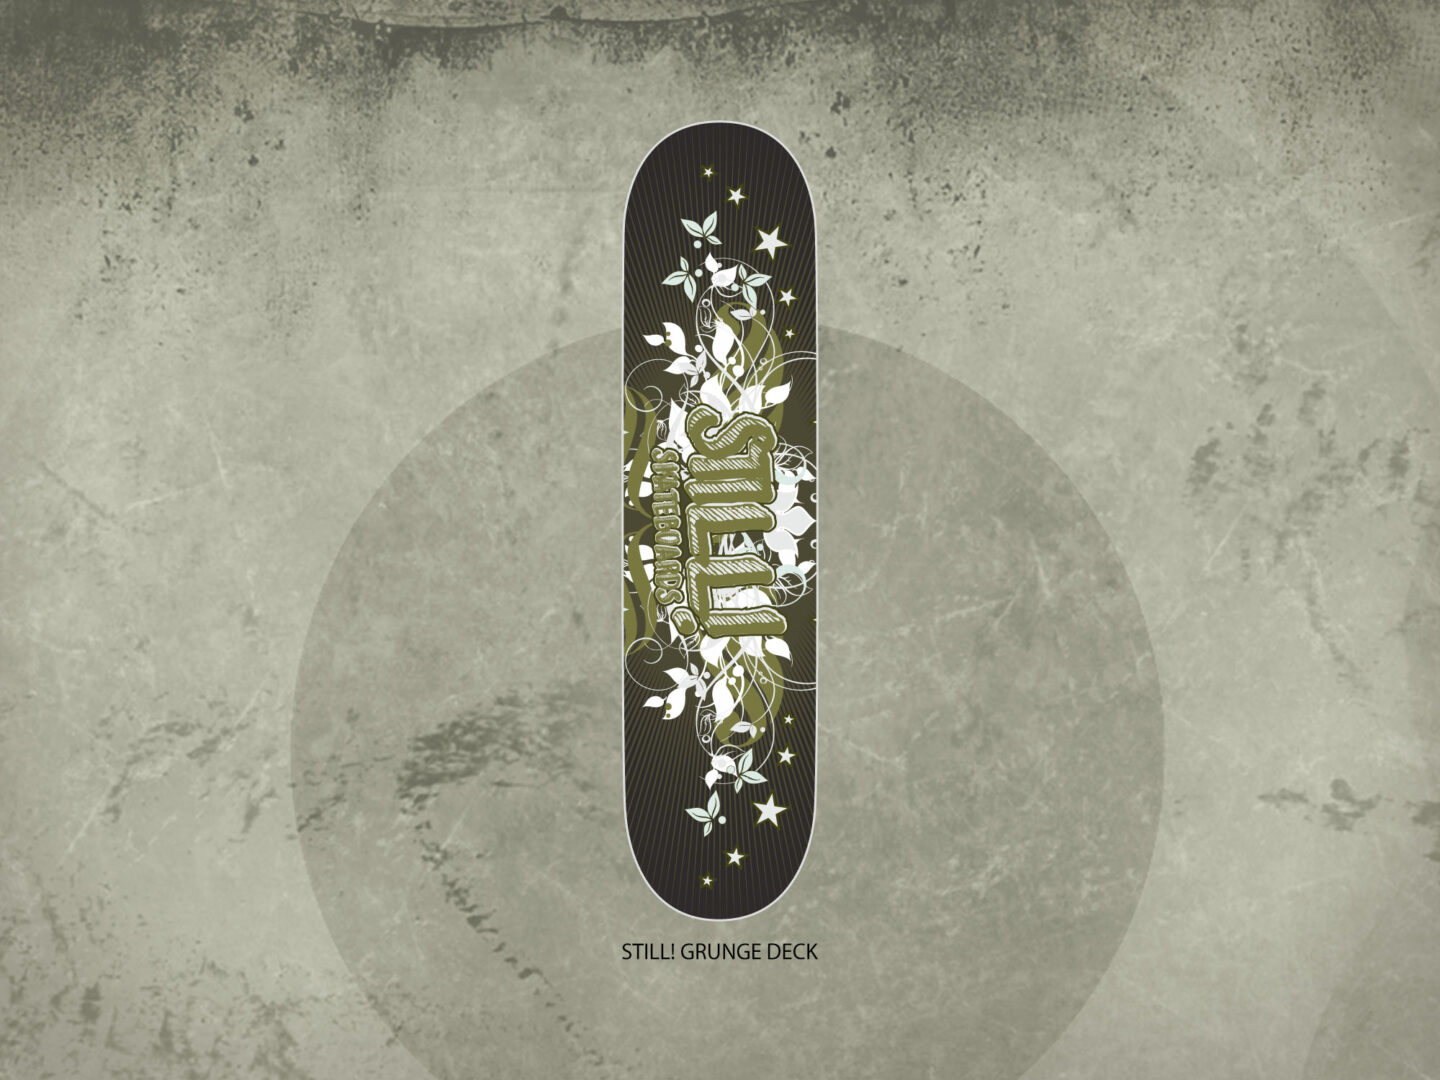 Still! Skateboards Grafica Tavola da Skateboard Still! Grunge